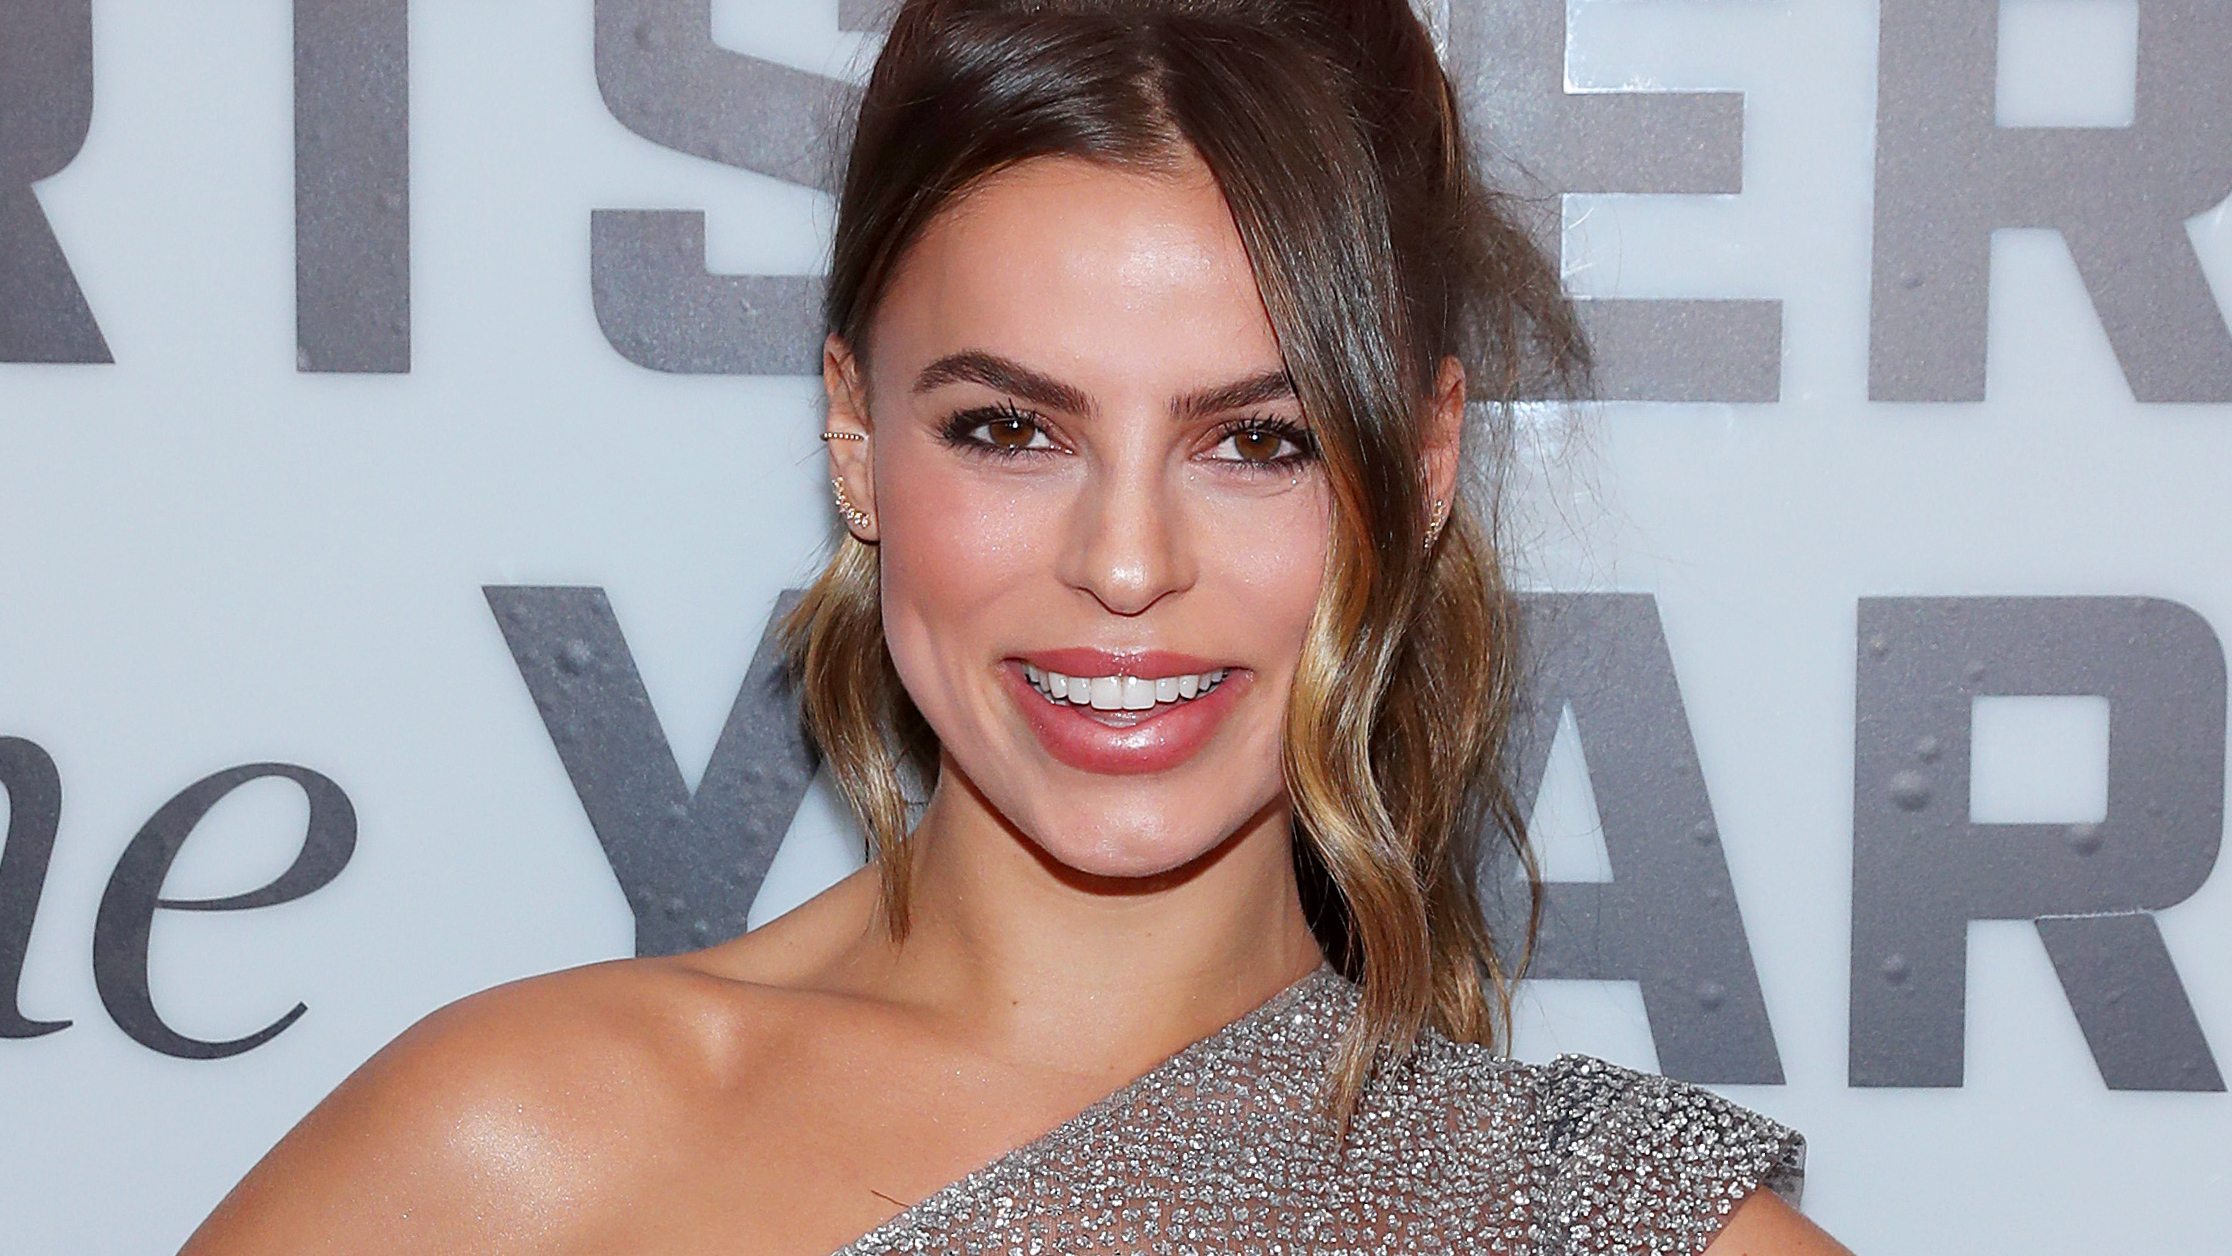 Sports Illustrated model Brooks Nader bares all in completely see-through dress at awards show